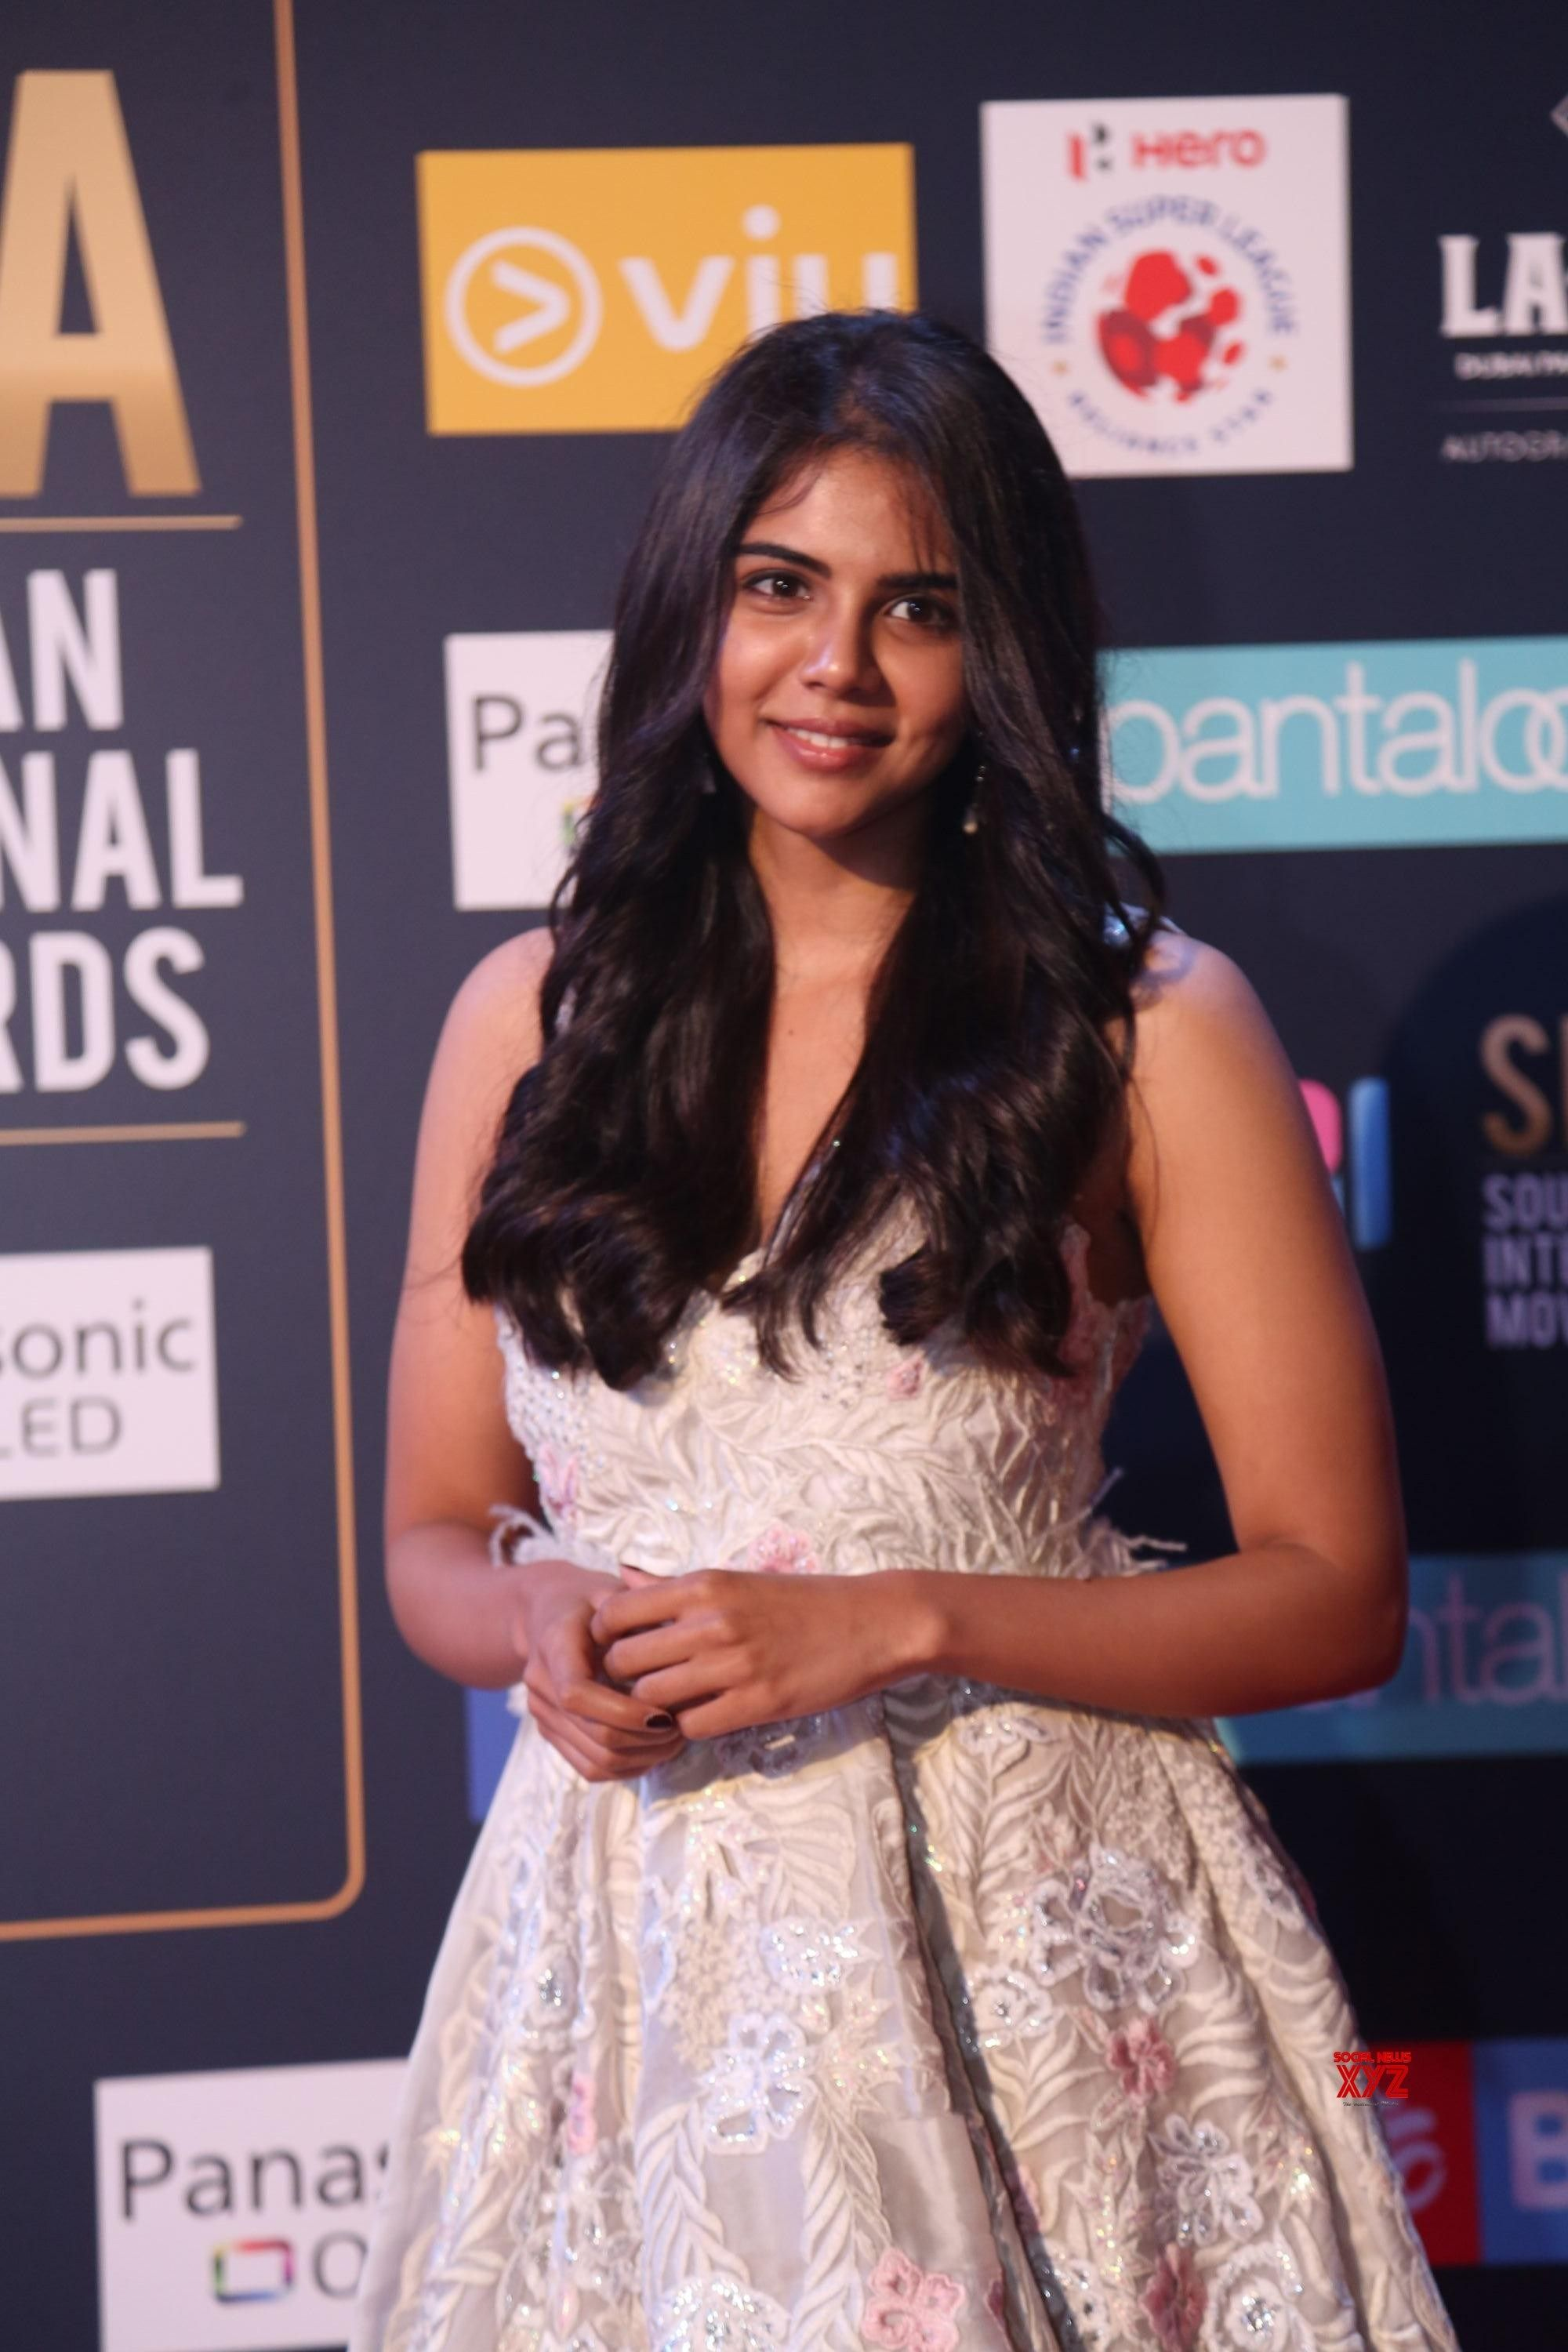 Celebs At SIIMA Awards 2018 Day 2 Red Carpet Gallery Set 2